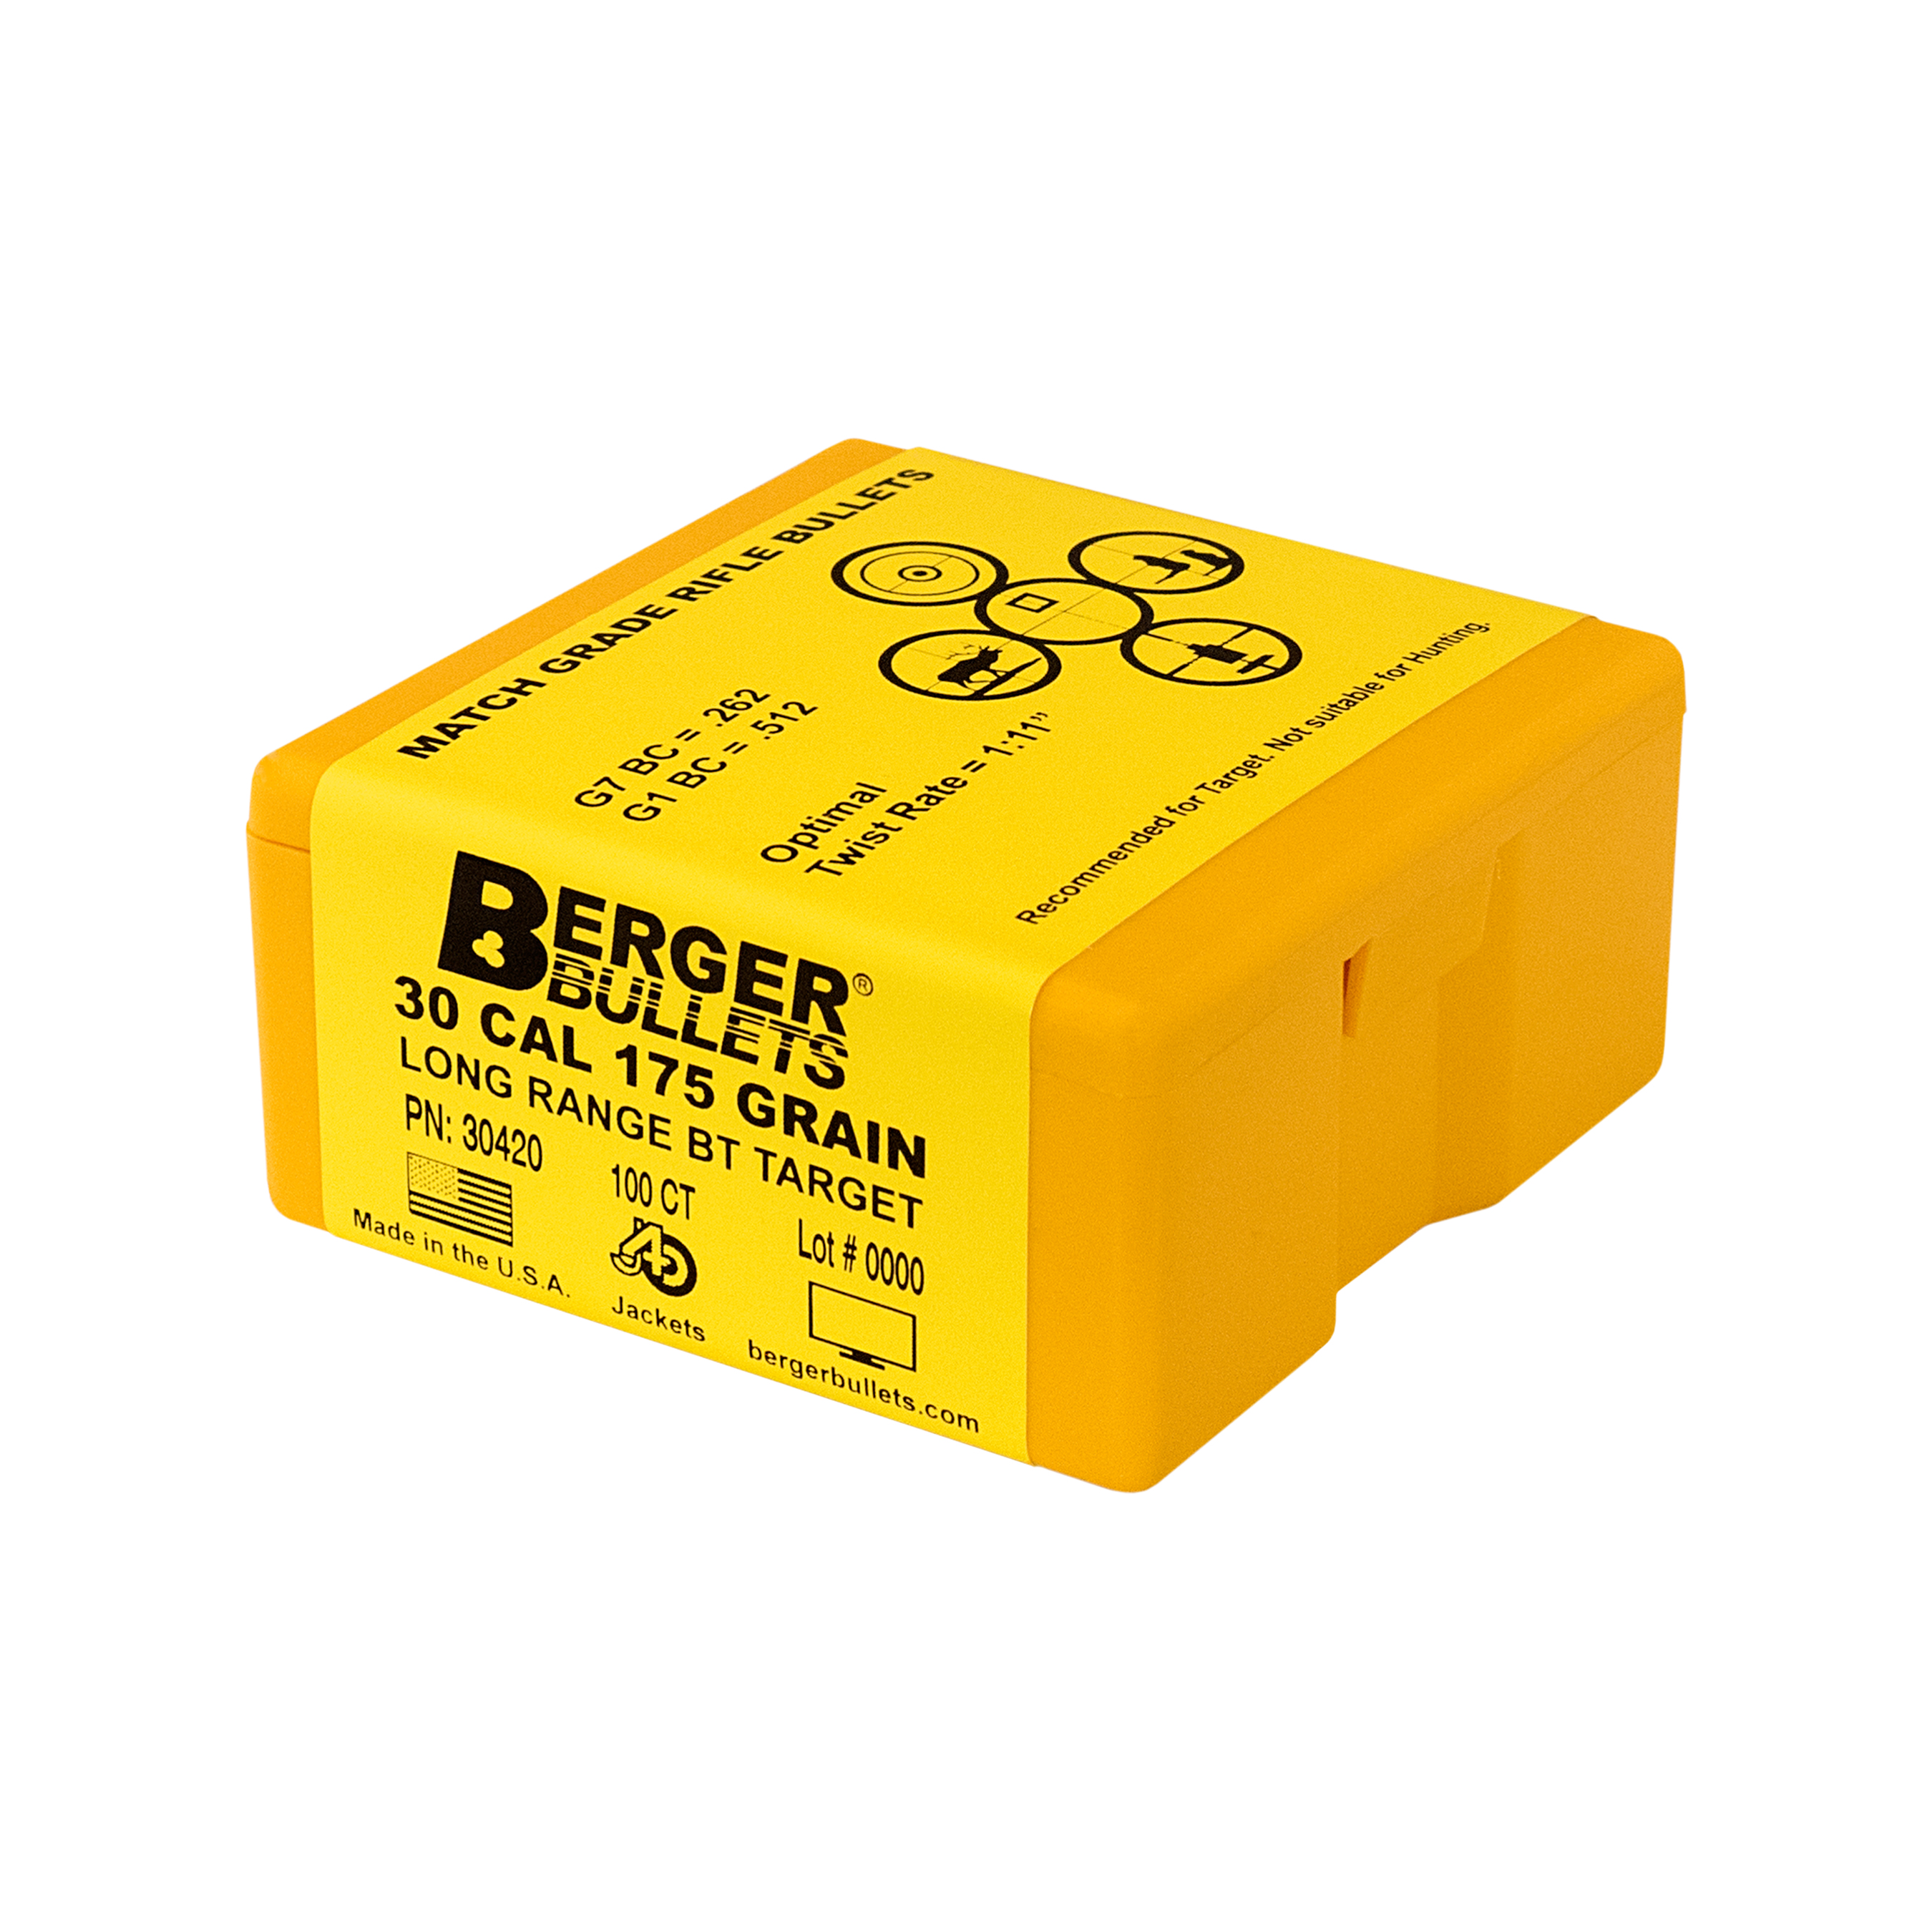 Berger 30 Cal 175 Gr Long Range BT Target Bullets (100 Ct)